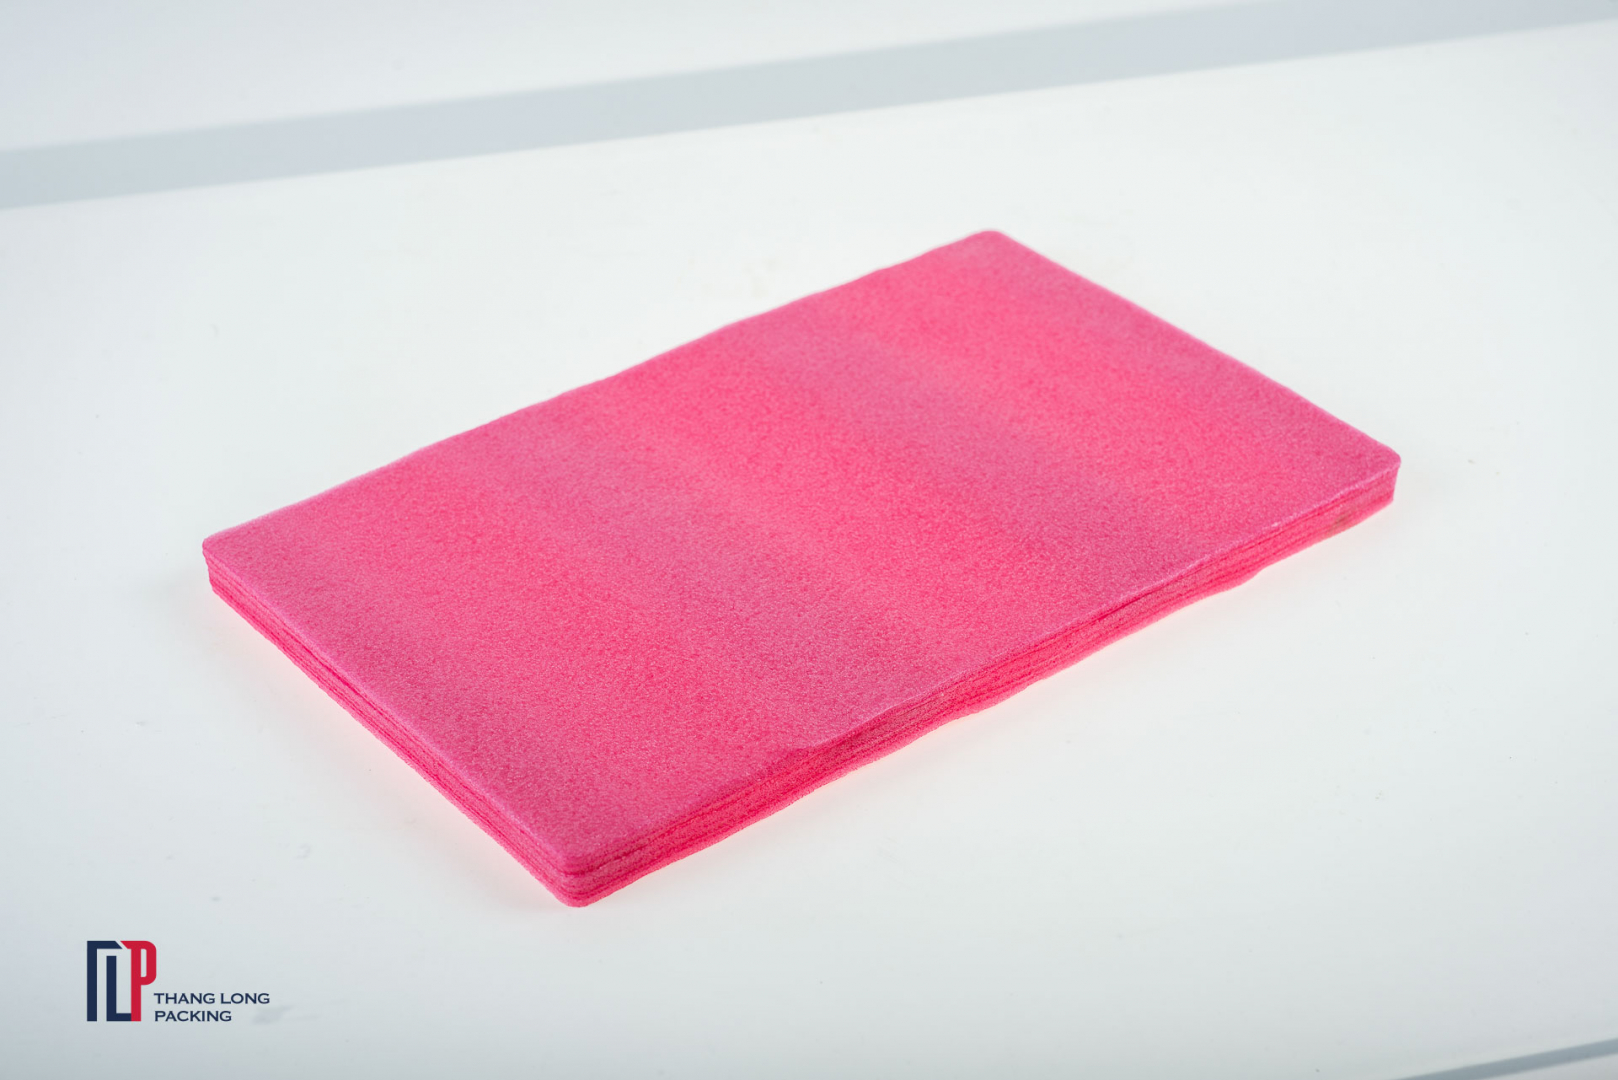 Shaped perforated pink PE foam